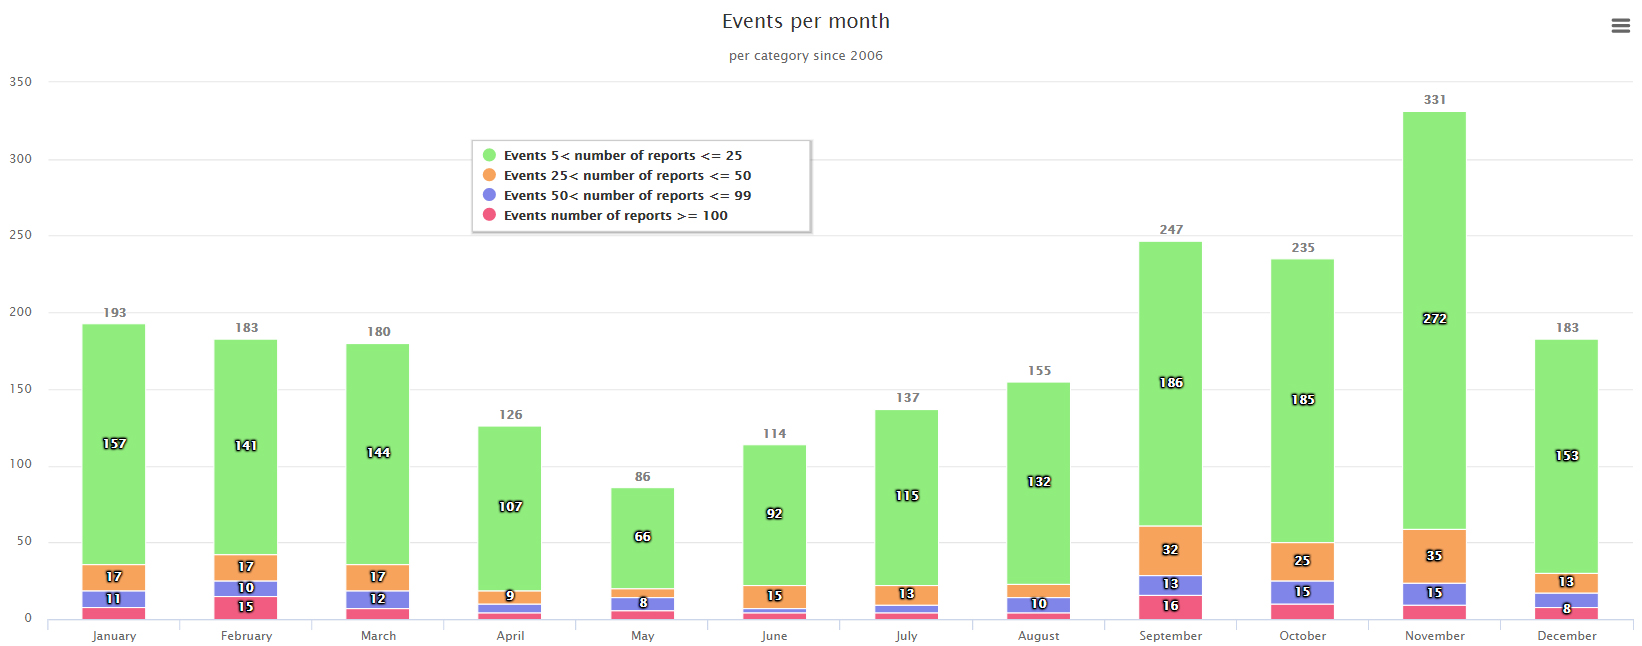 events-per-month-and-category